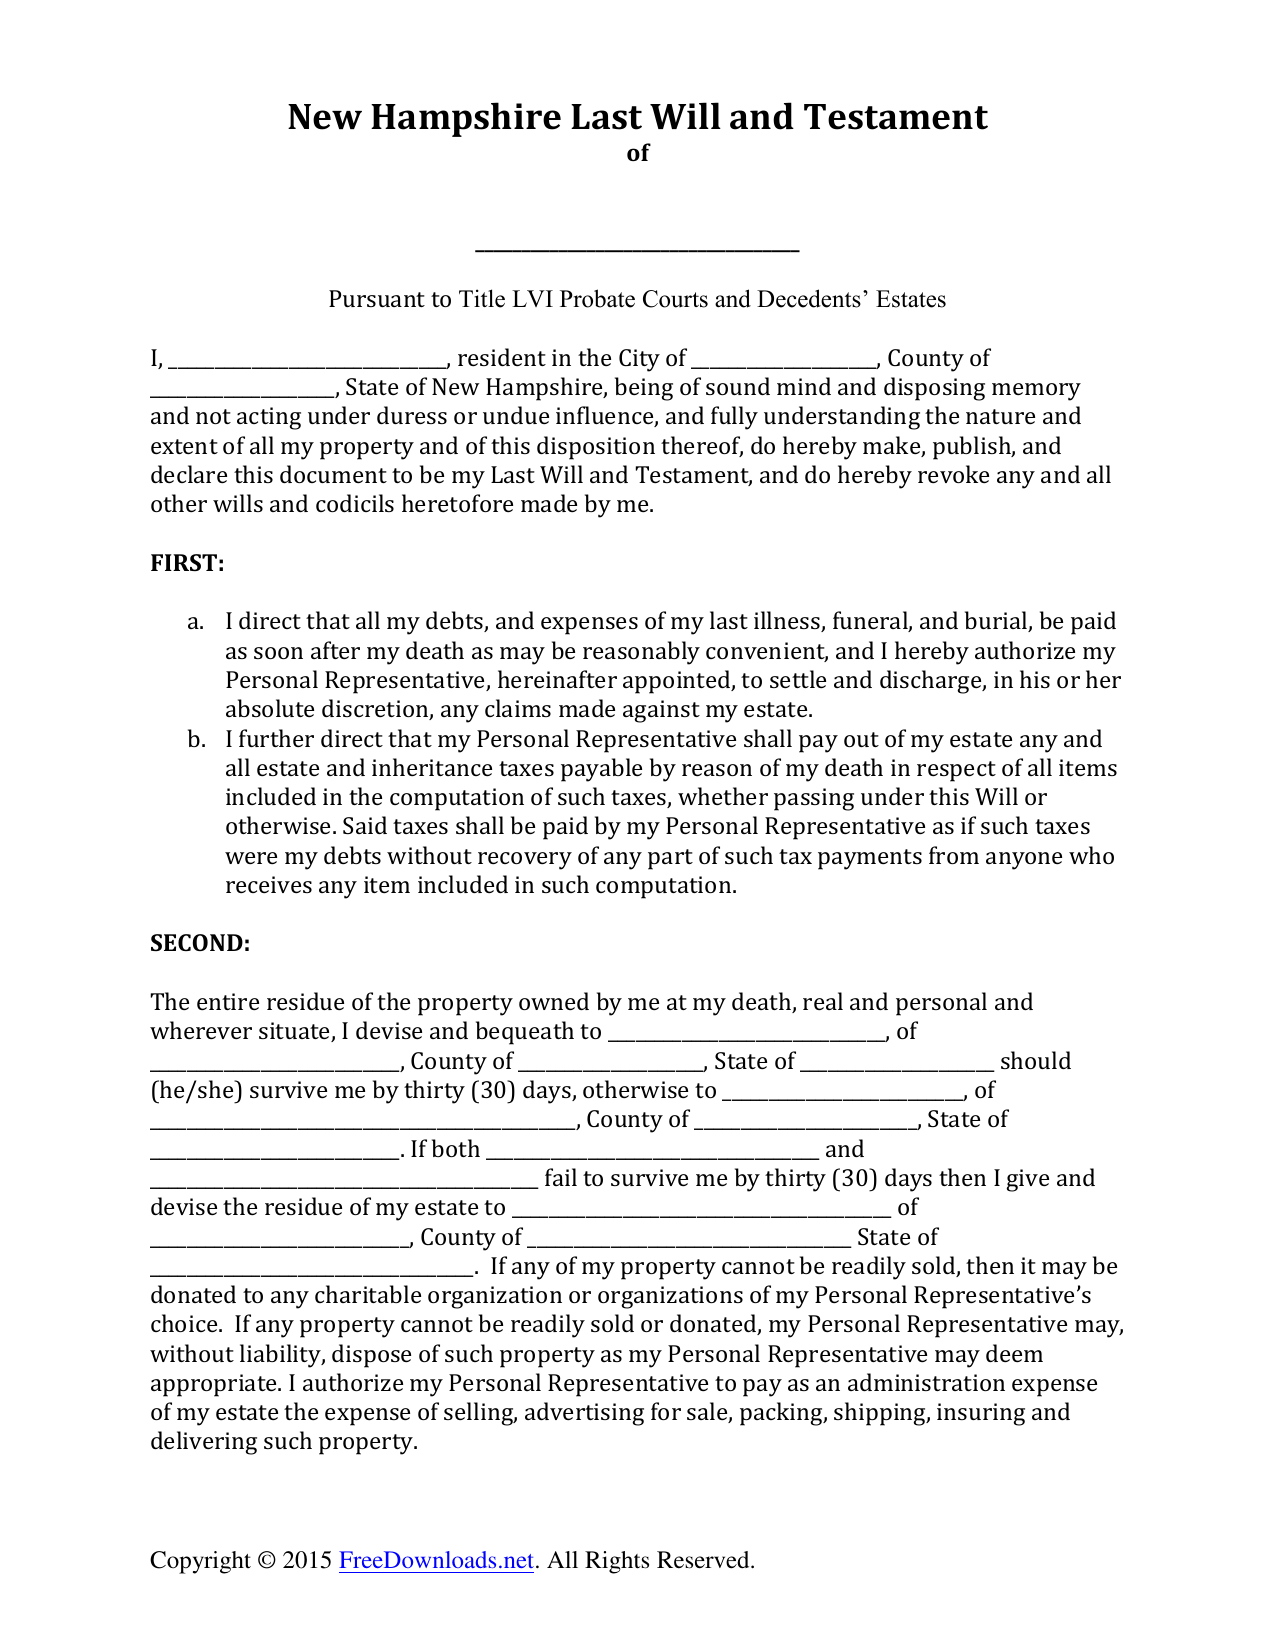 photo relating to Free Printable Last Will and Testament Blank Forms referred to as Down load Refreshing Hampshire Previous Will and Testomony Variety PDF